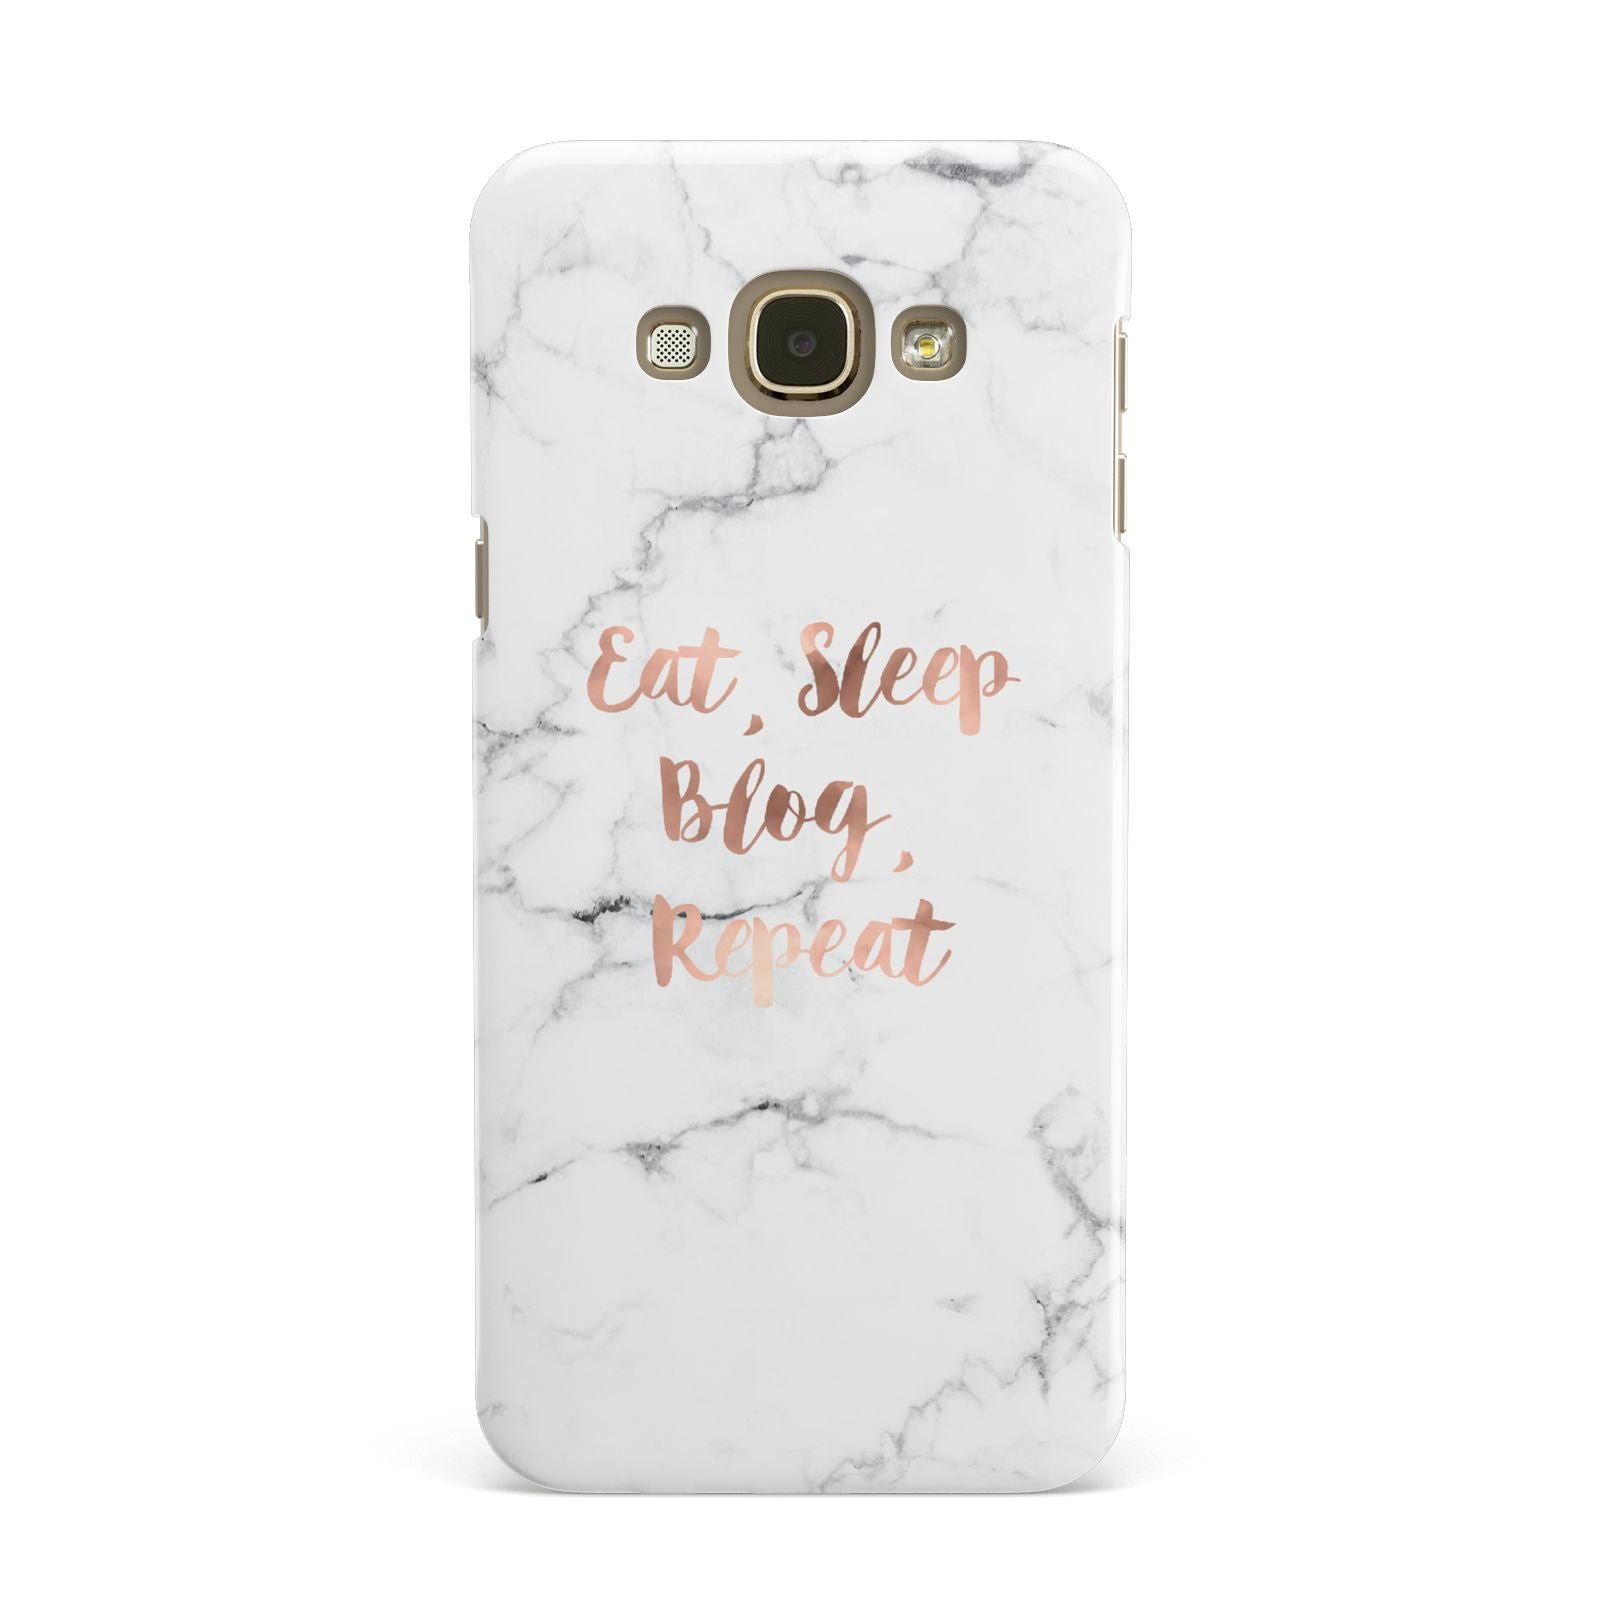 Eat Sleep Blog Repeat Marble Effect Samsung Galaxy A8 Case